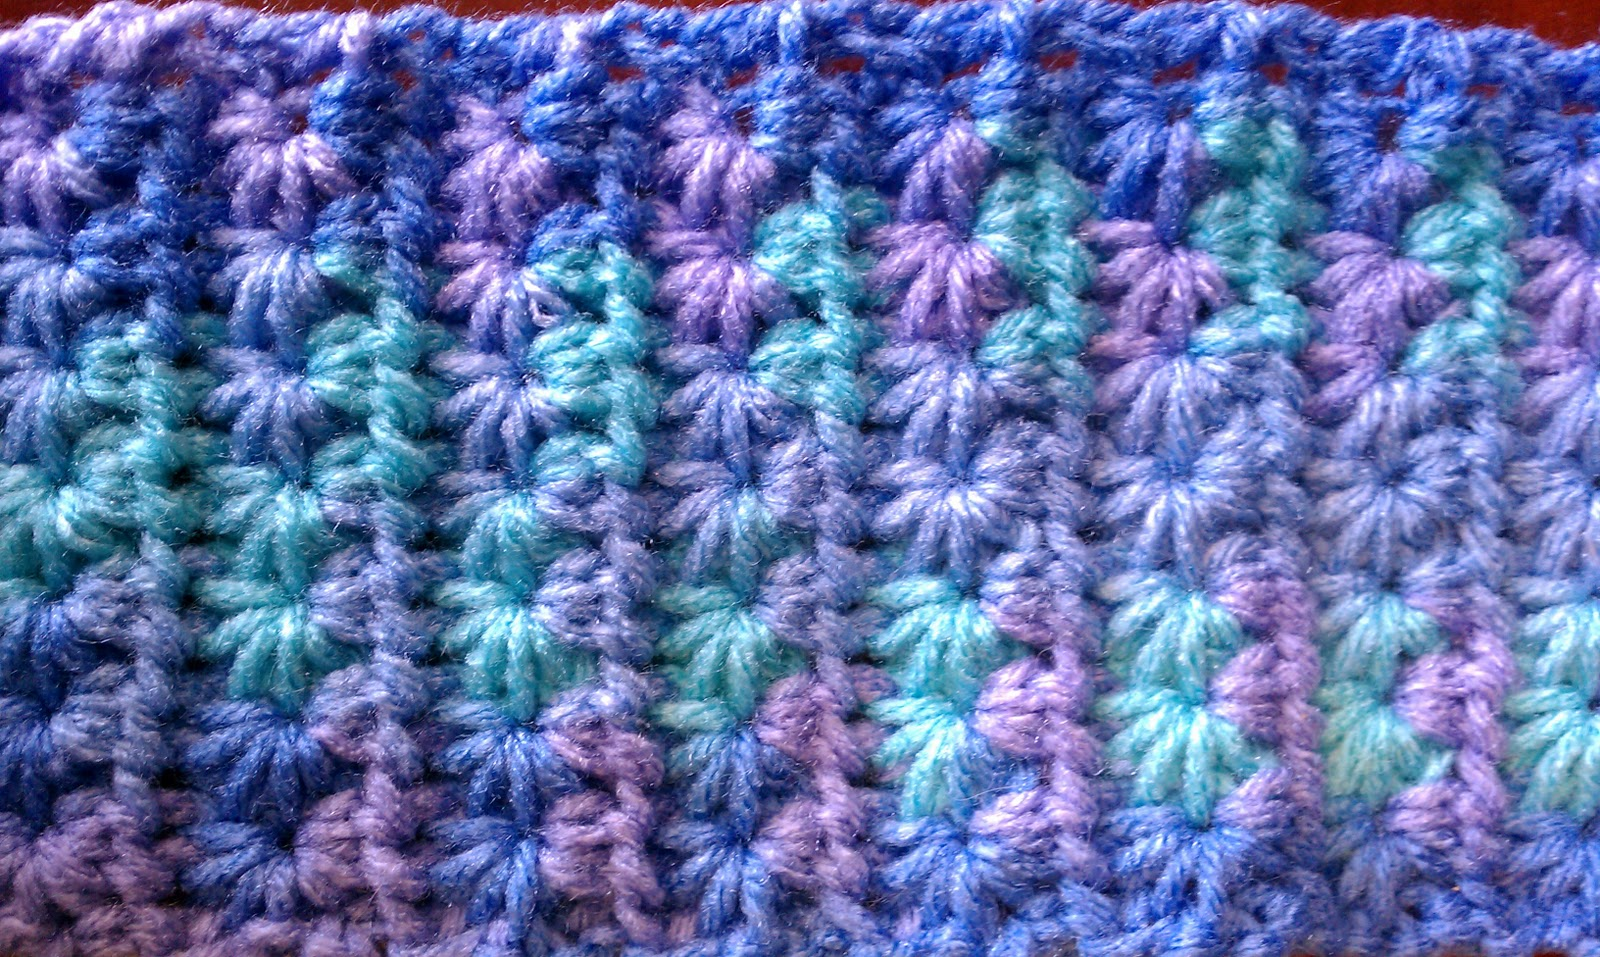 Crochet Knit Stitch Instructions : Crochet Star Stitch Tutorial and Patterns Stitch Piece n Purl